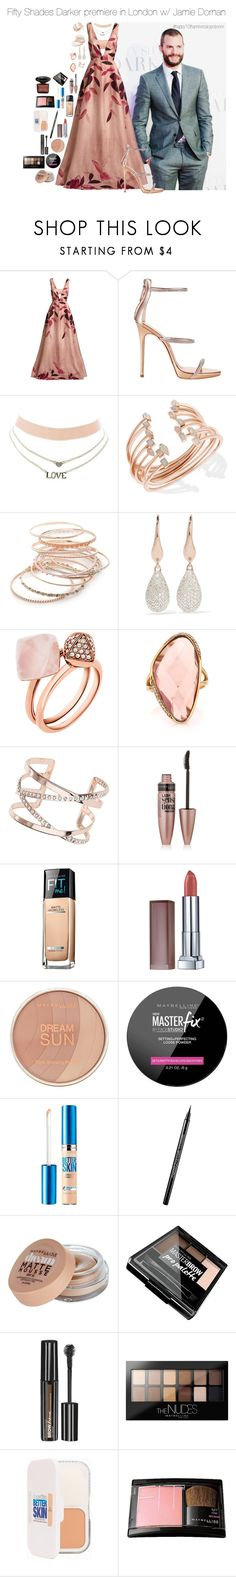 """""""fiftyshadesdarker.set"""" by hsmklau ❤ liked on Polyvore featuring Lela Rose, Giuseppe Zanotti, Charlotte Russe, Kendra Scott, Red Camel, Monica Vinader, Michael Kors, Mark Broumand, Dorothy Perkins and Maybelline"""